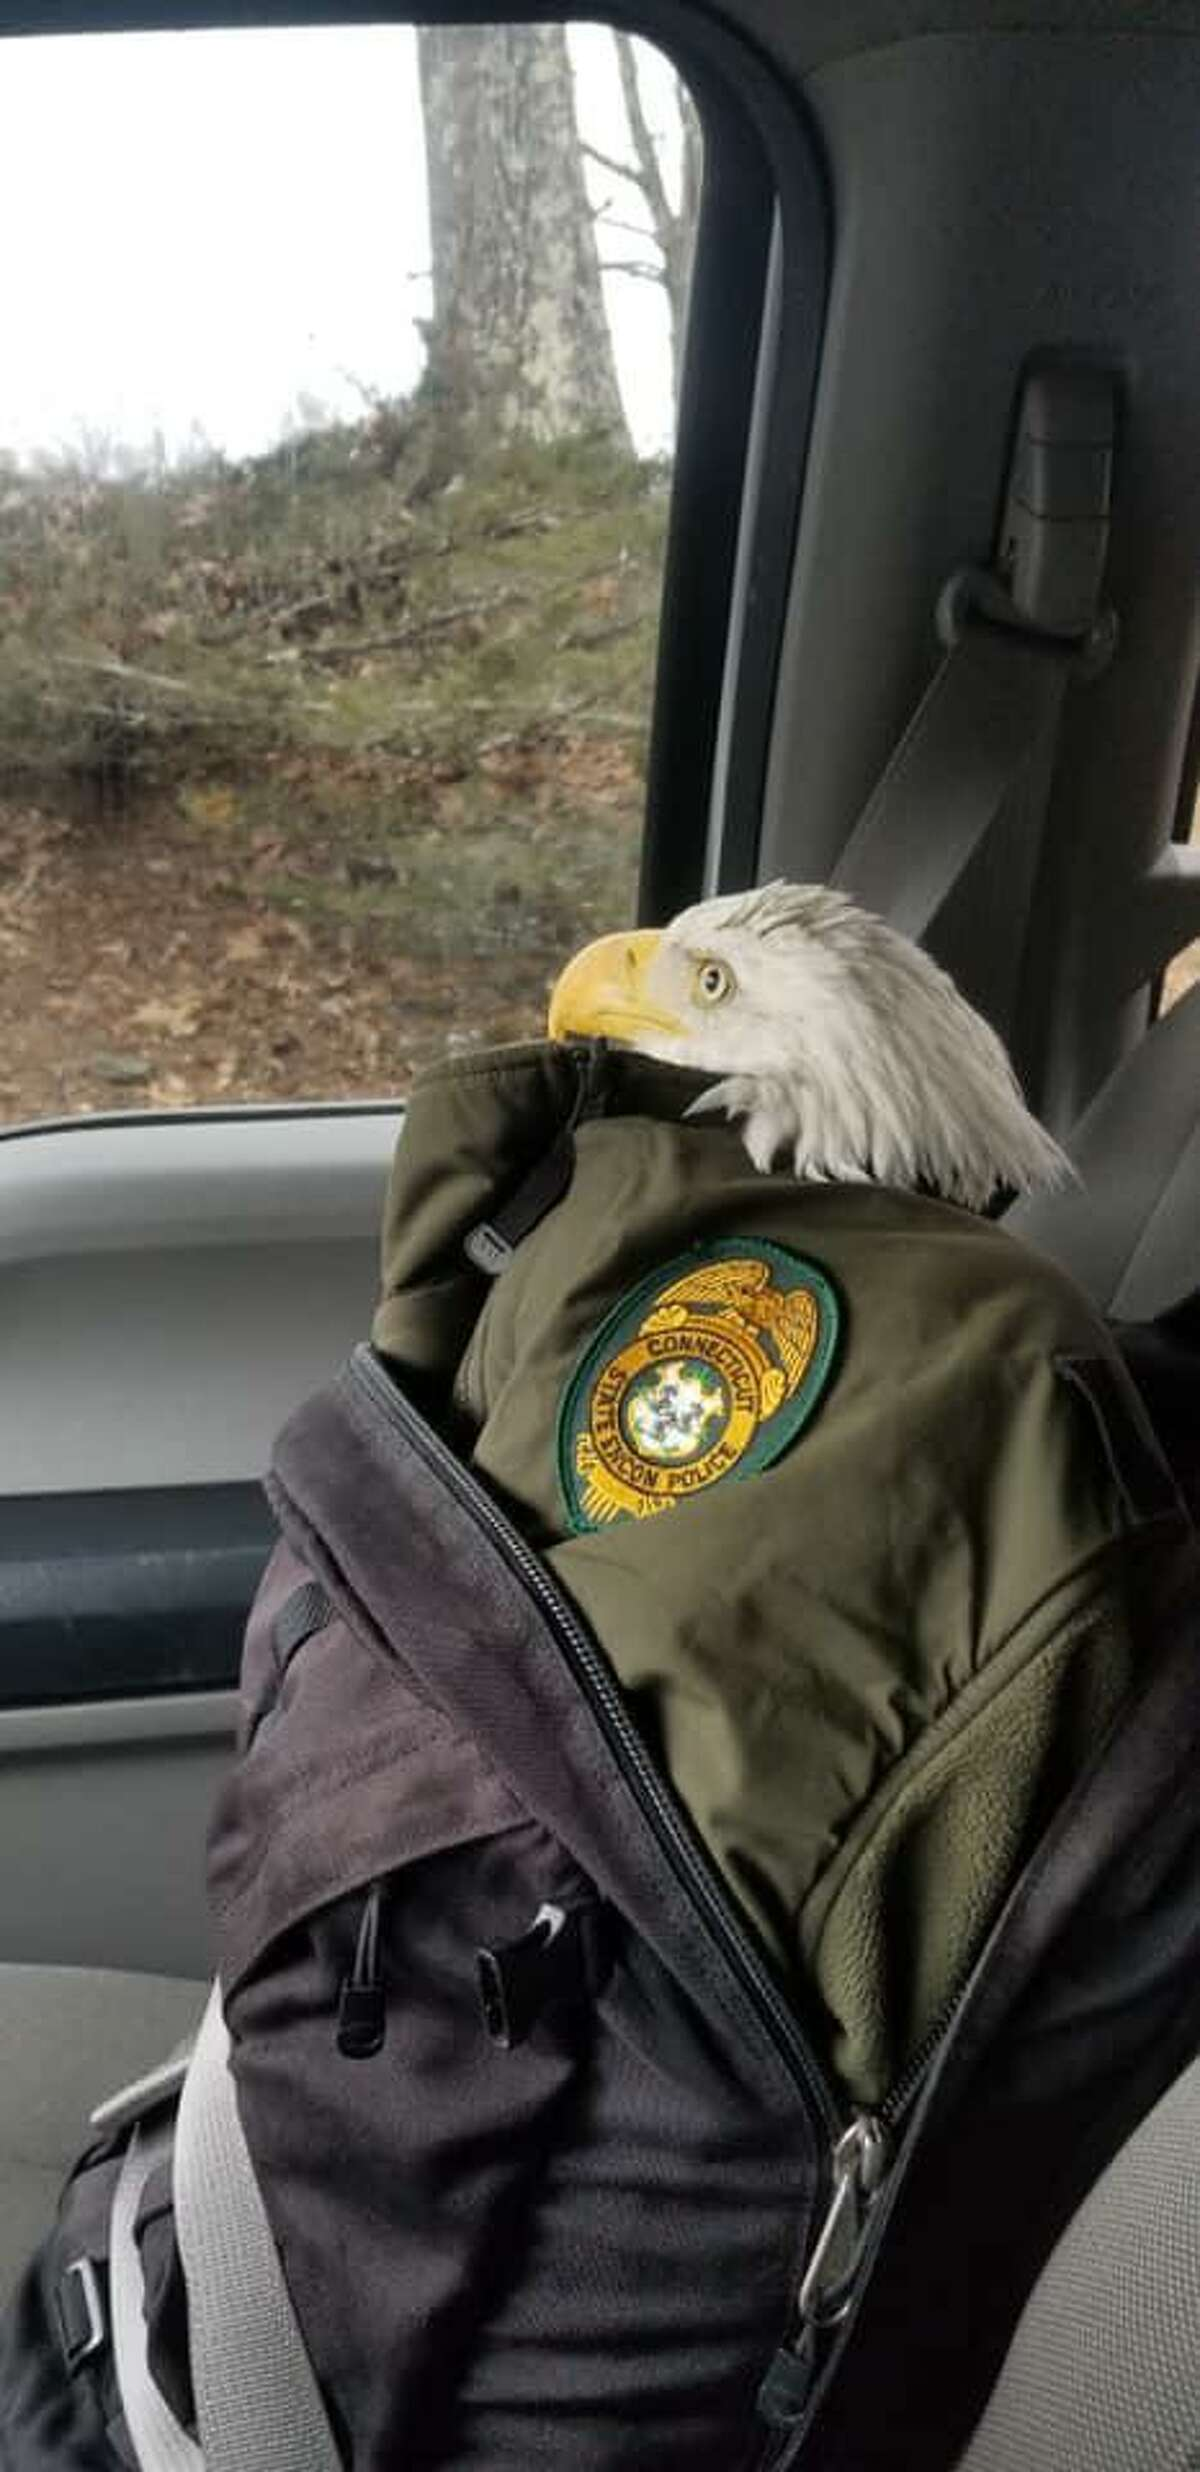 The bald eagle as she was being transported to the Sharon Audubon Center in Sharon, Conn., after being found injured by a hiker in Thomaston on Wednesday, Dec. 16, 2020.